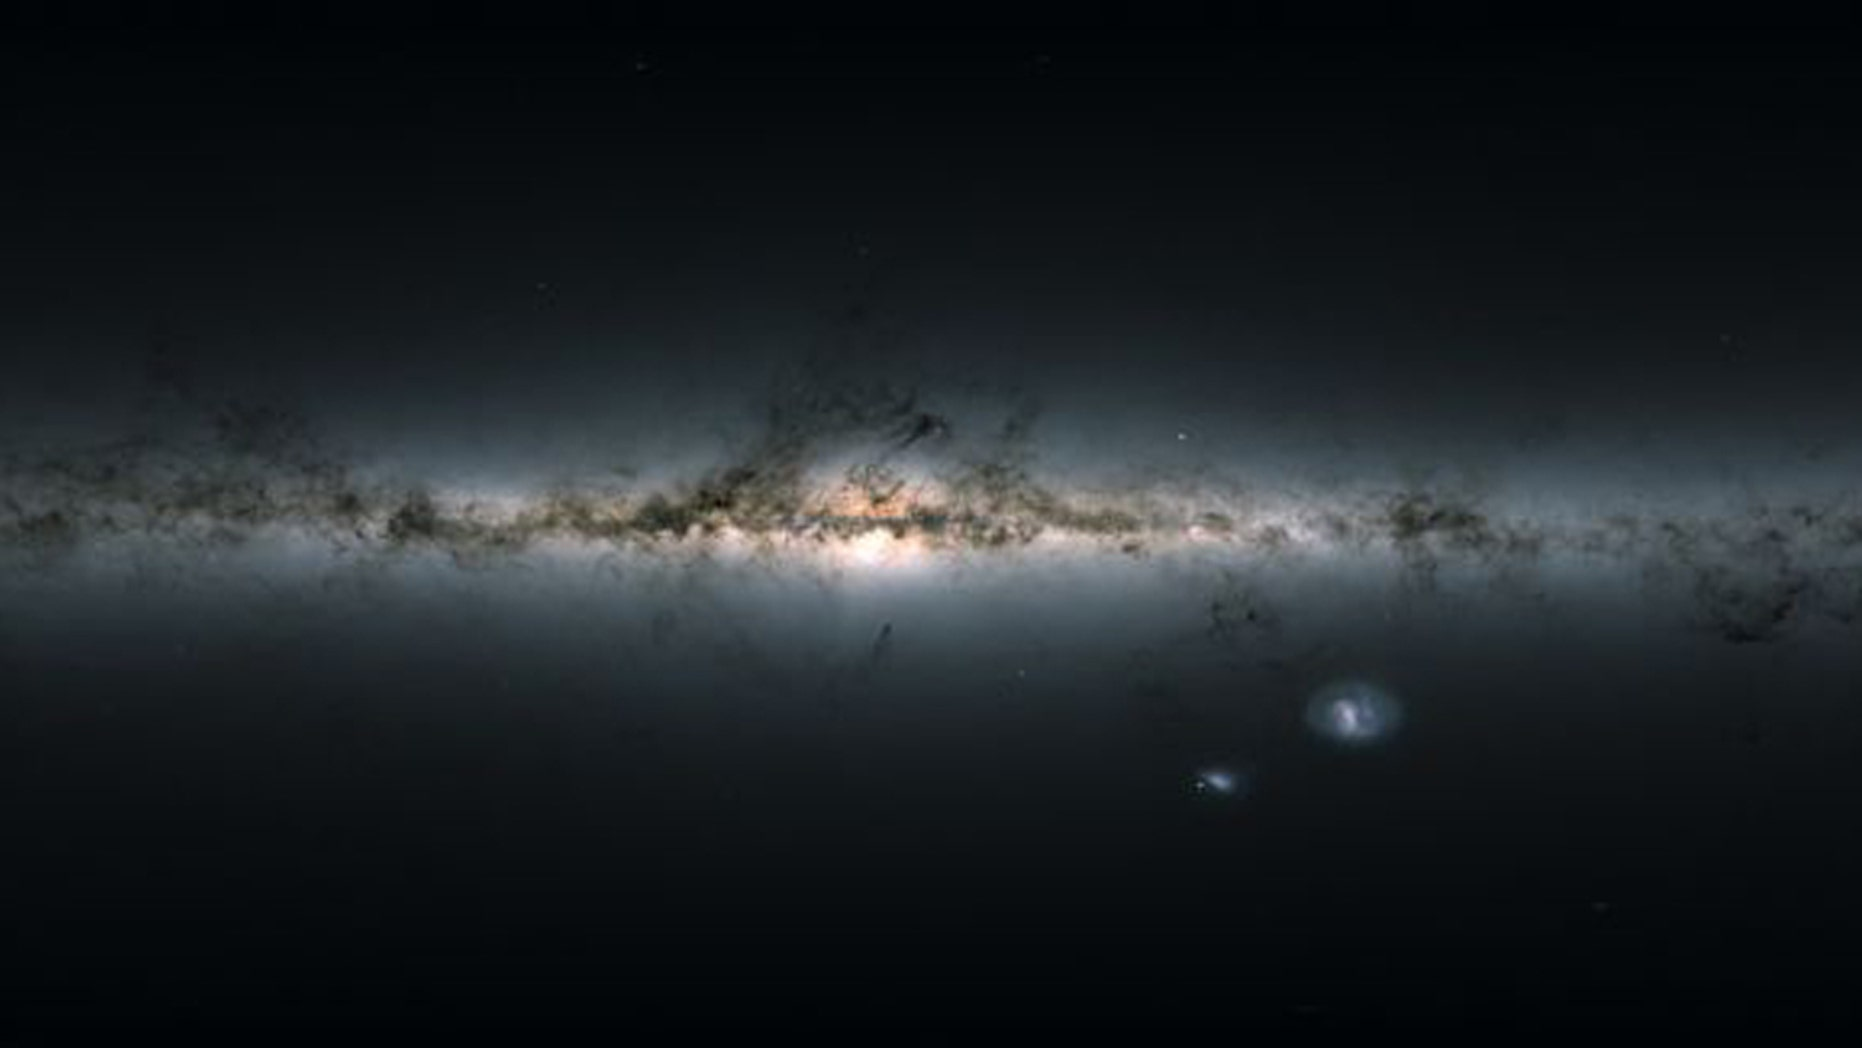 The Gaia mission recently created a celestial survey of 1 billion stars in the Milky Way. They're spotting gorgeous celestial features like mountain ranges, arches and streams of stars. (Credit: ESA/Gaia/DPAC, CC BY-SA 3.0 IGO)